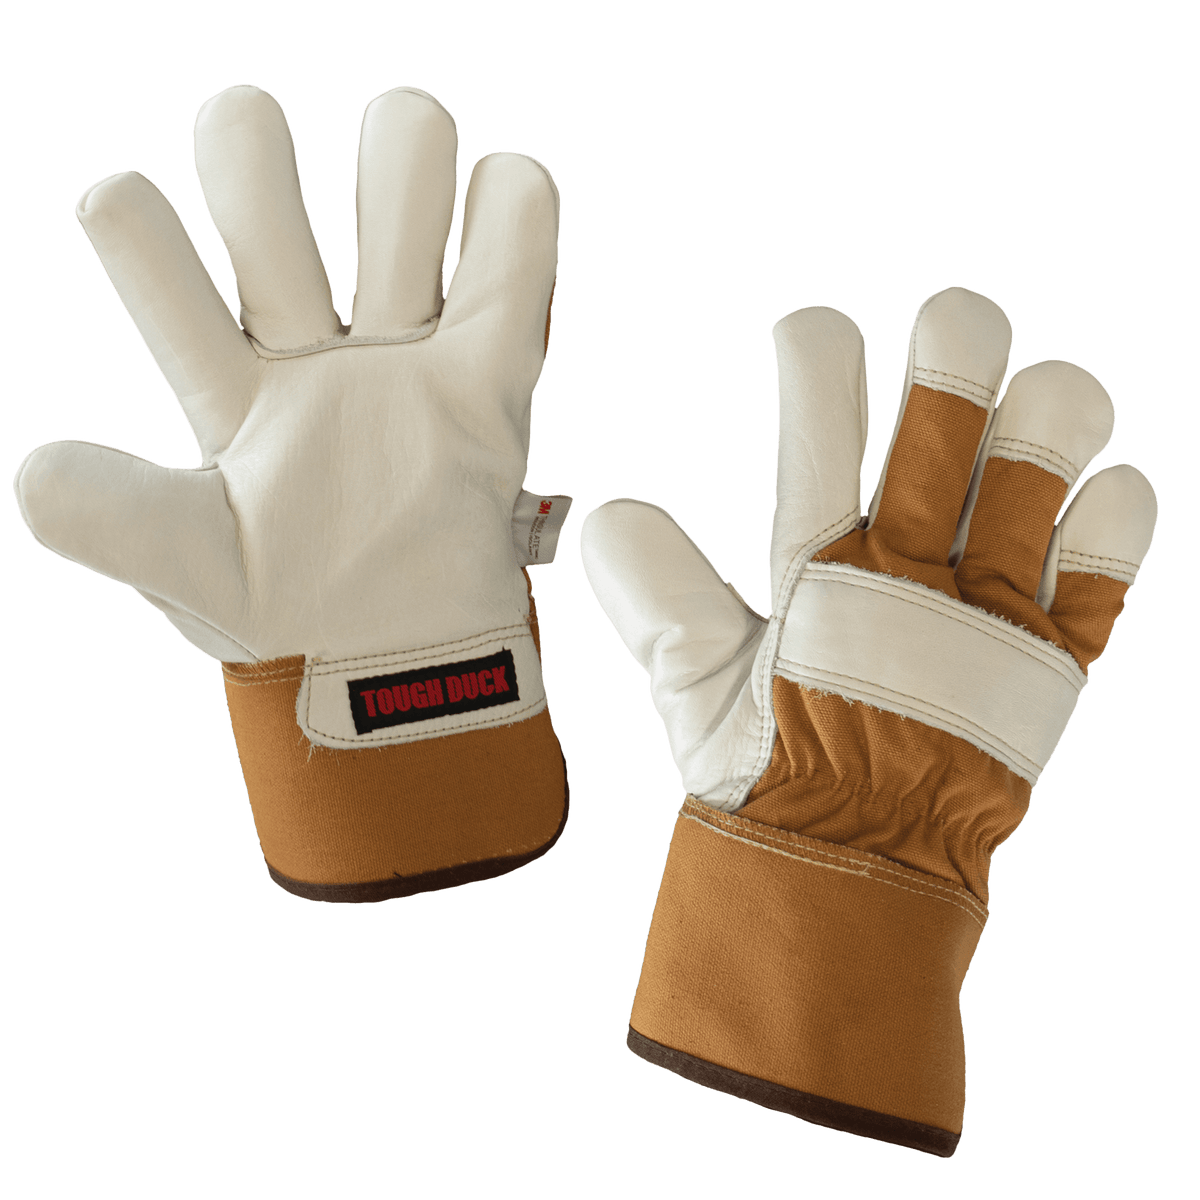 Tough Duck Pile Lined Premium Cowgrain Leather Winter Work Gloves | Limited Size Selection Work Gloves and Hats - Cleanflow